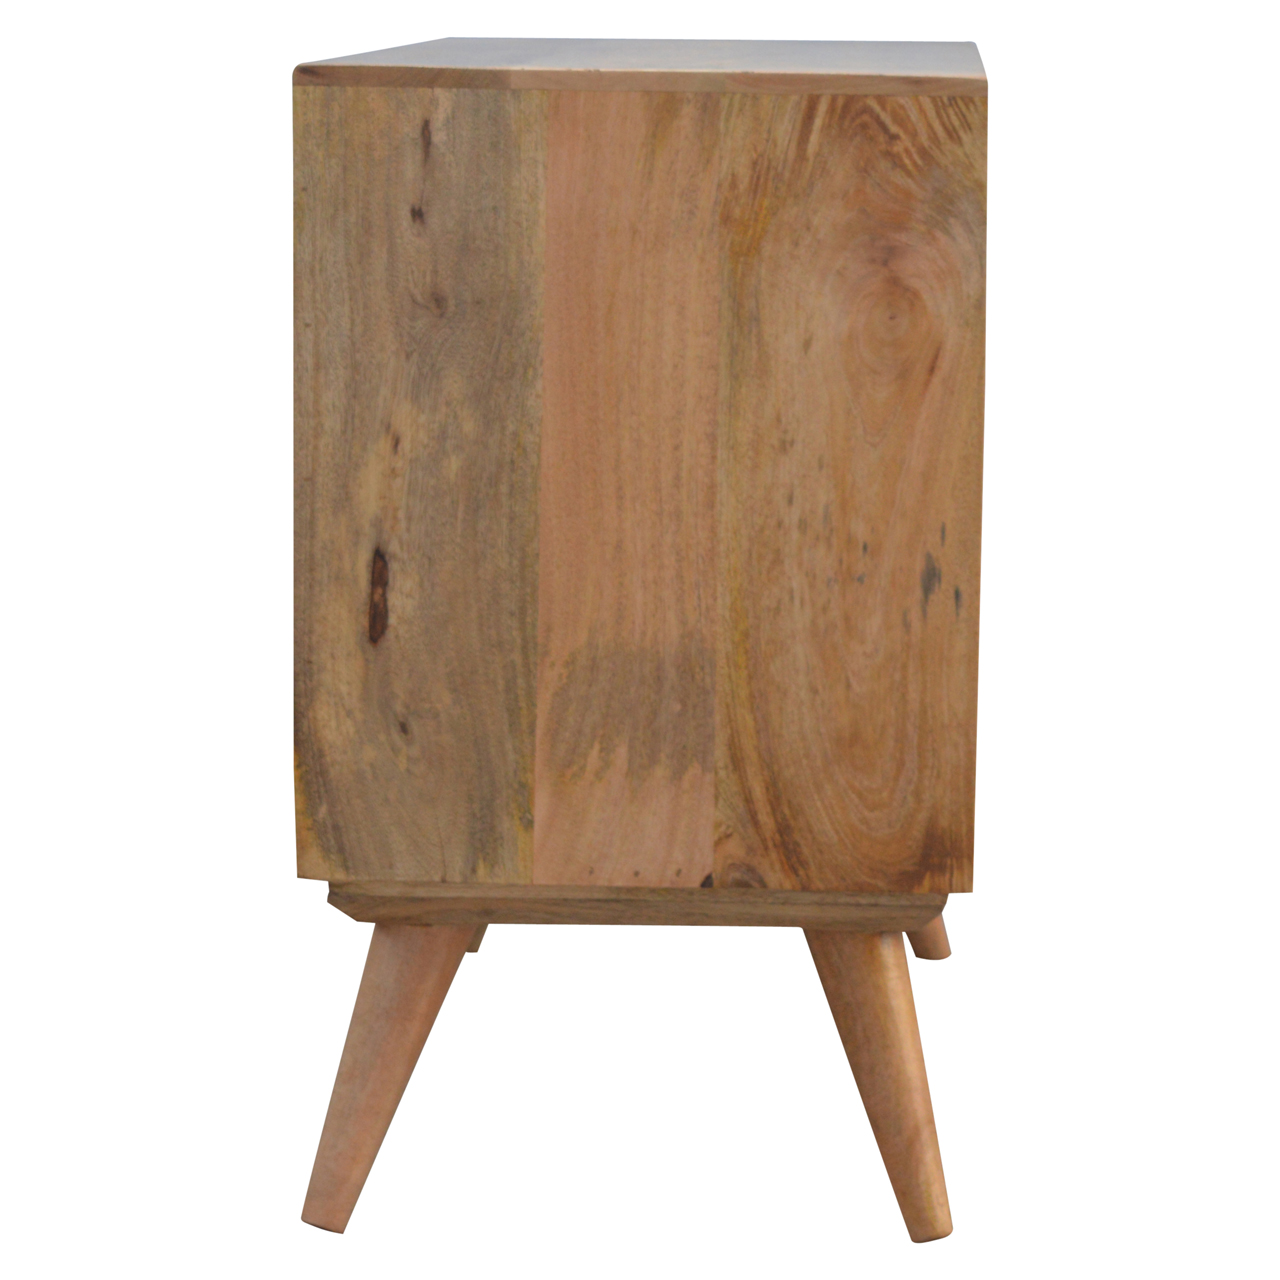 IN136 Nordic Cabinet with 4 Drawers & Sliding Cabinet